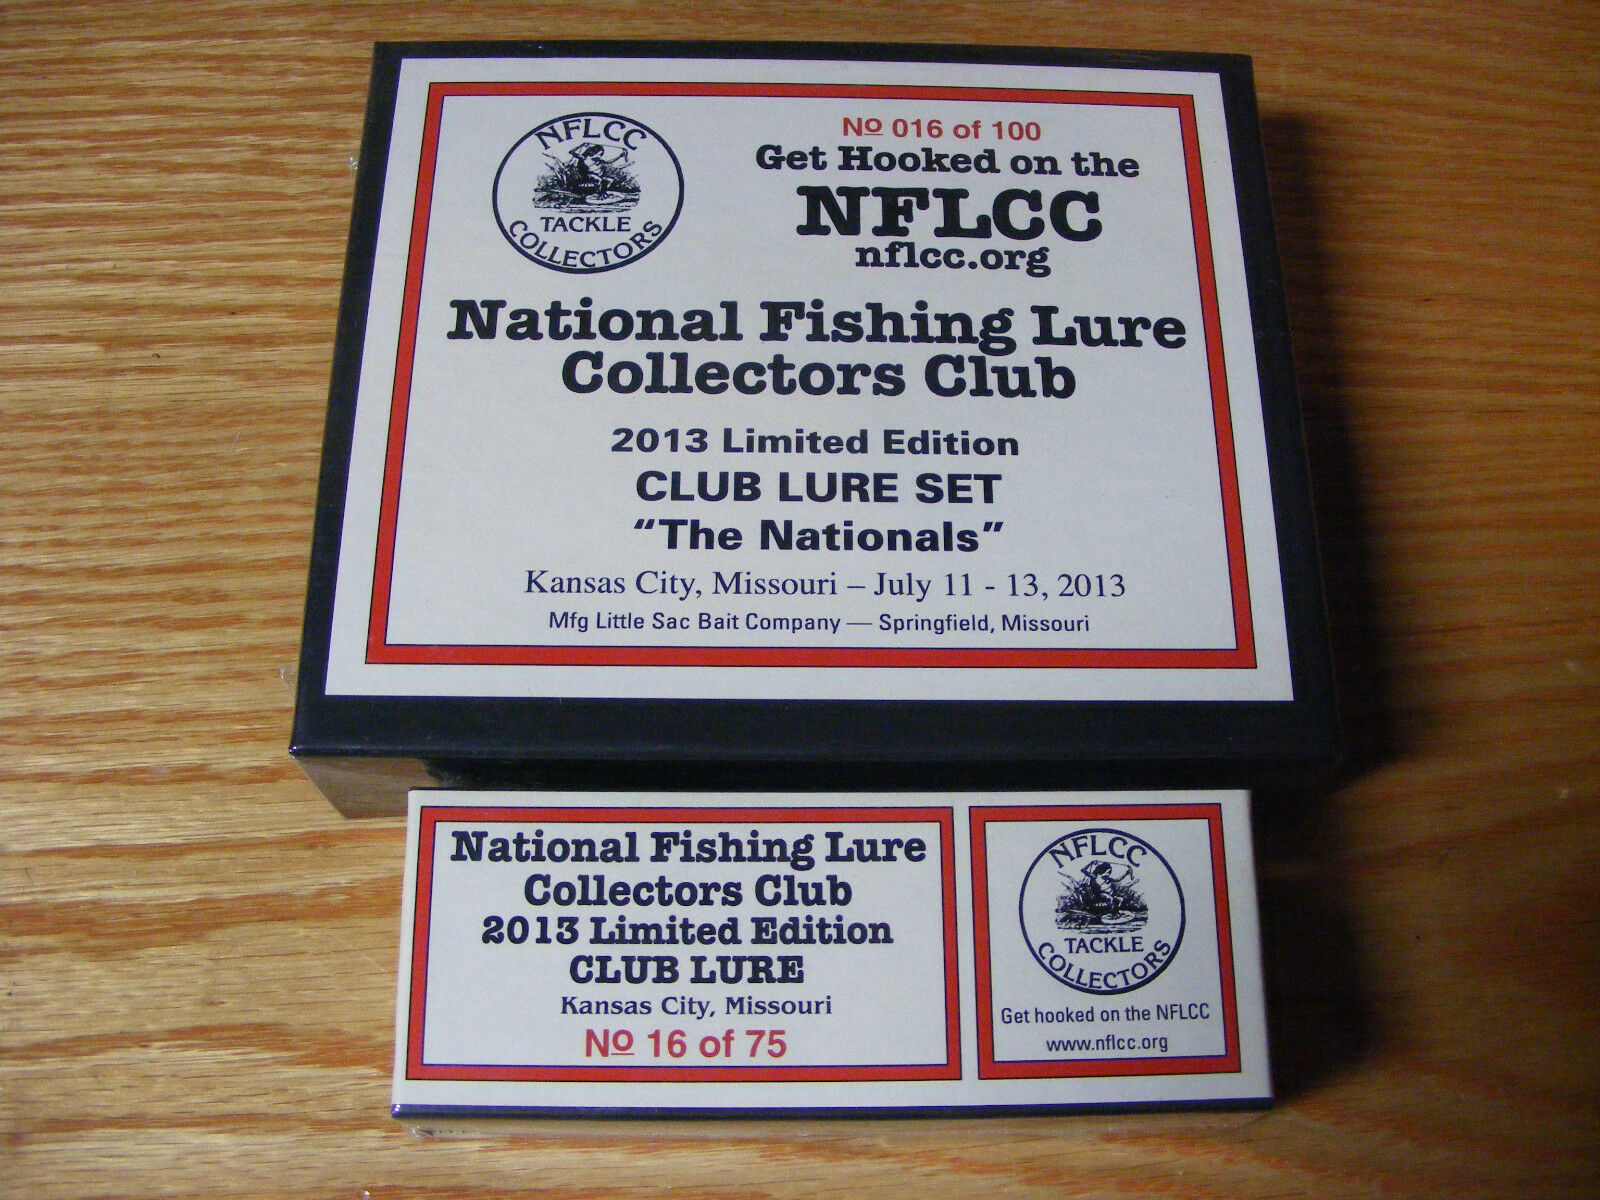 2013 Nationals NFLCC Club Lure Set made by Little Sac Bait Co with Special Lure